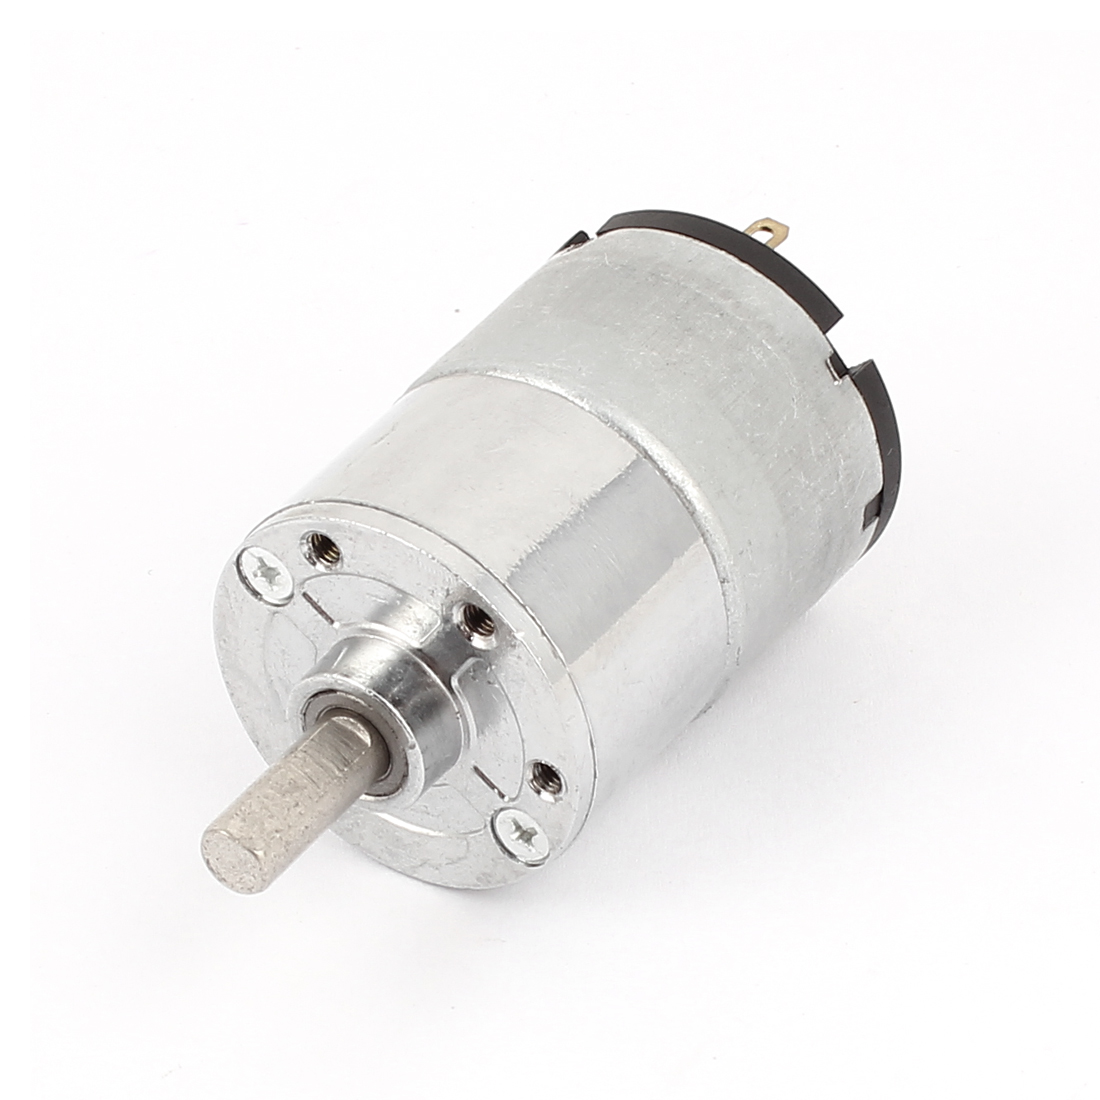 DC 12V 500RPM High Torque Electric Geared Box Speed Reduce Motor